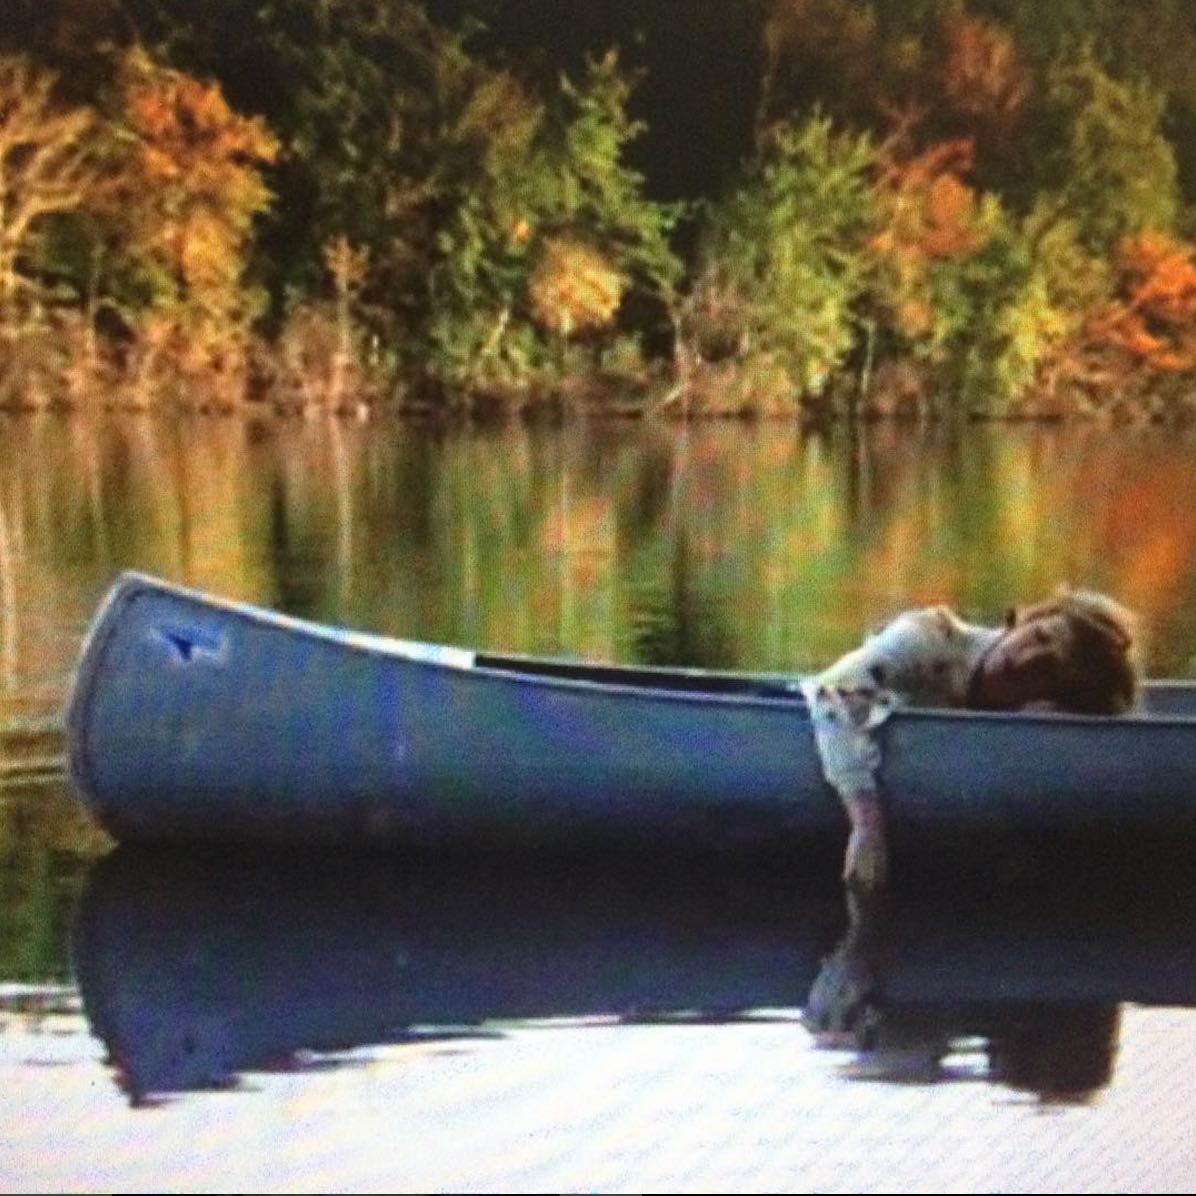 Screen shot from Friday the 13th, 1980